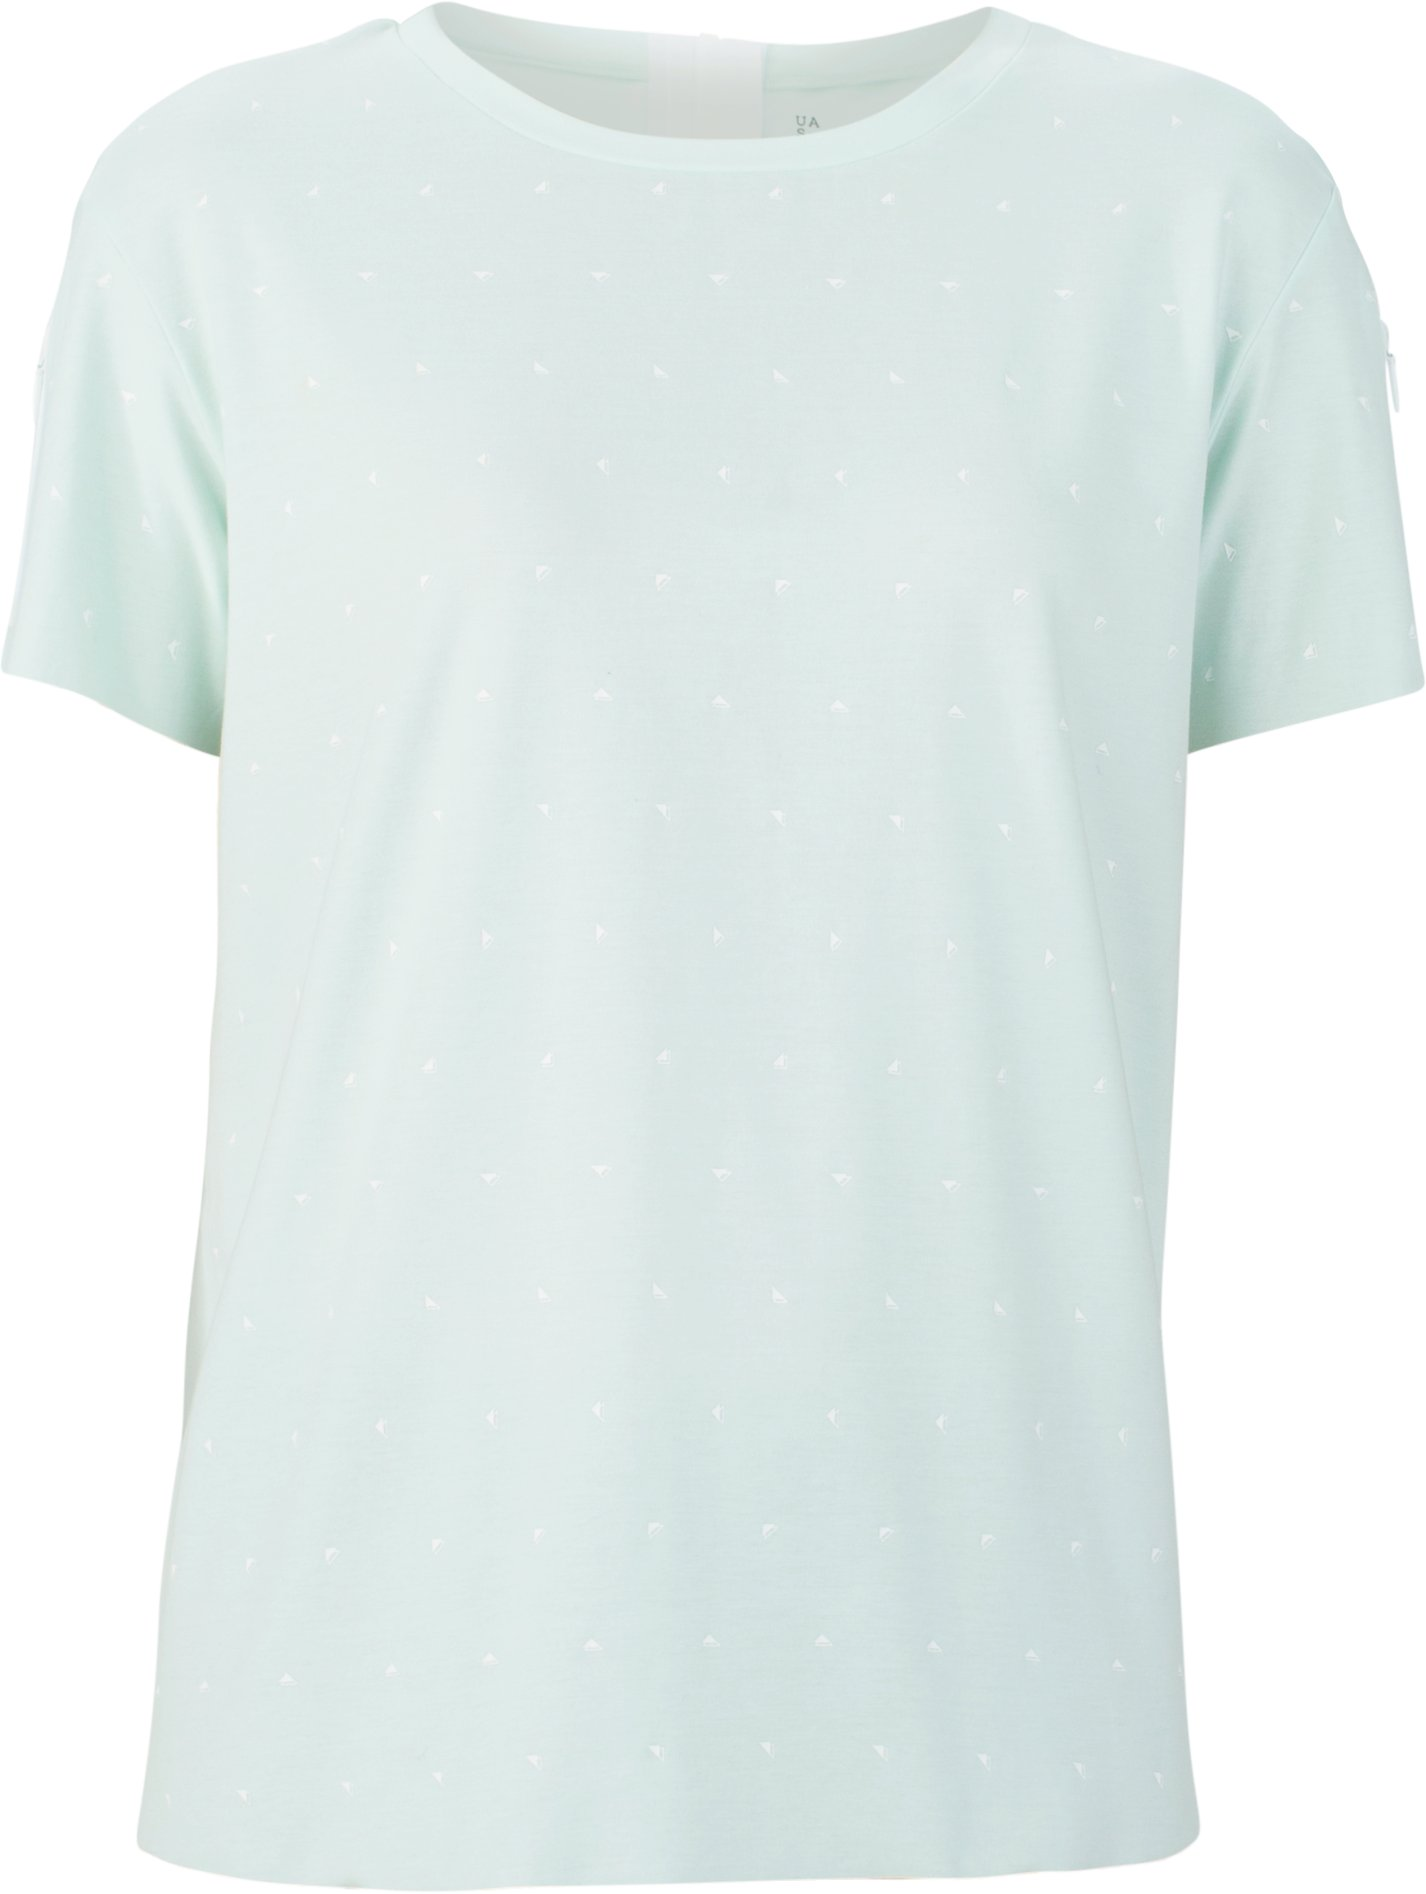 Women's UAS Back Zip Pattern T-Shirt, BABY BLUE, undefined